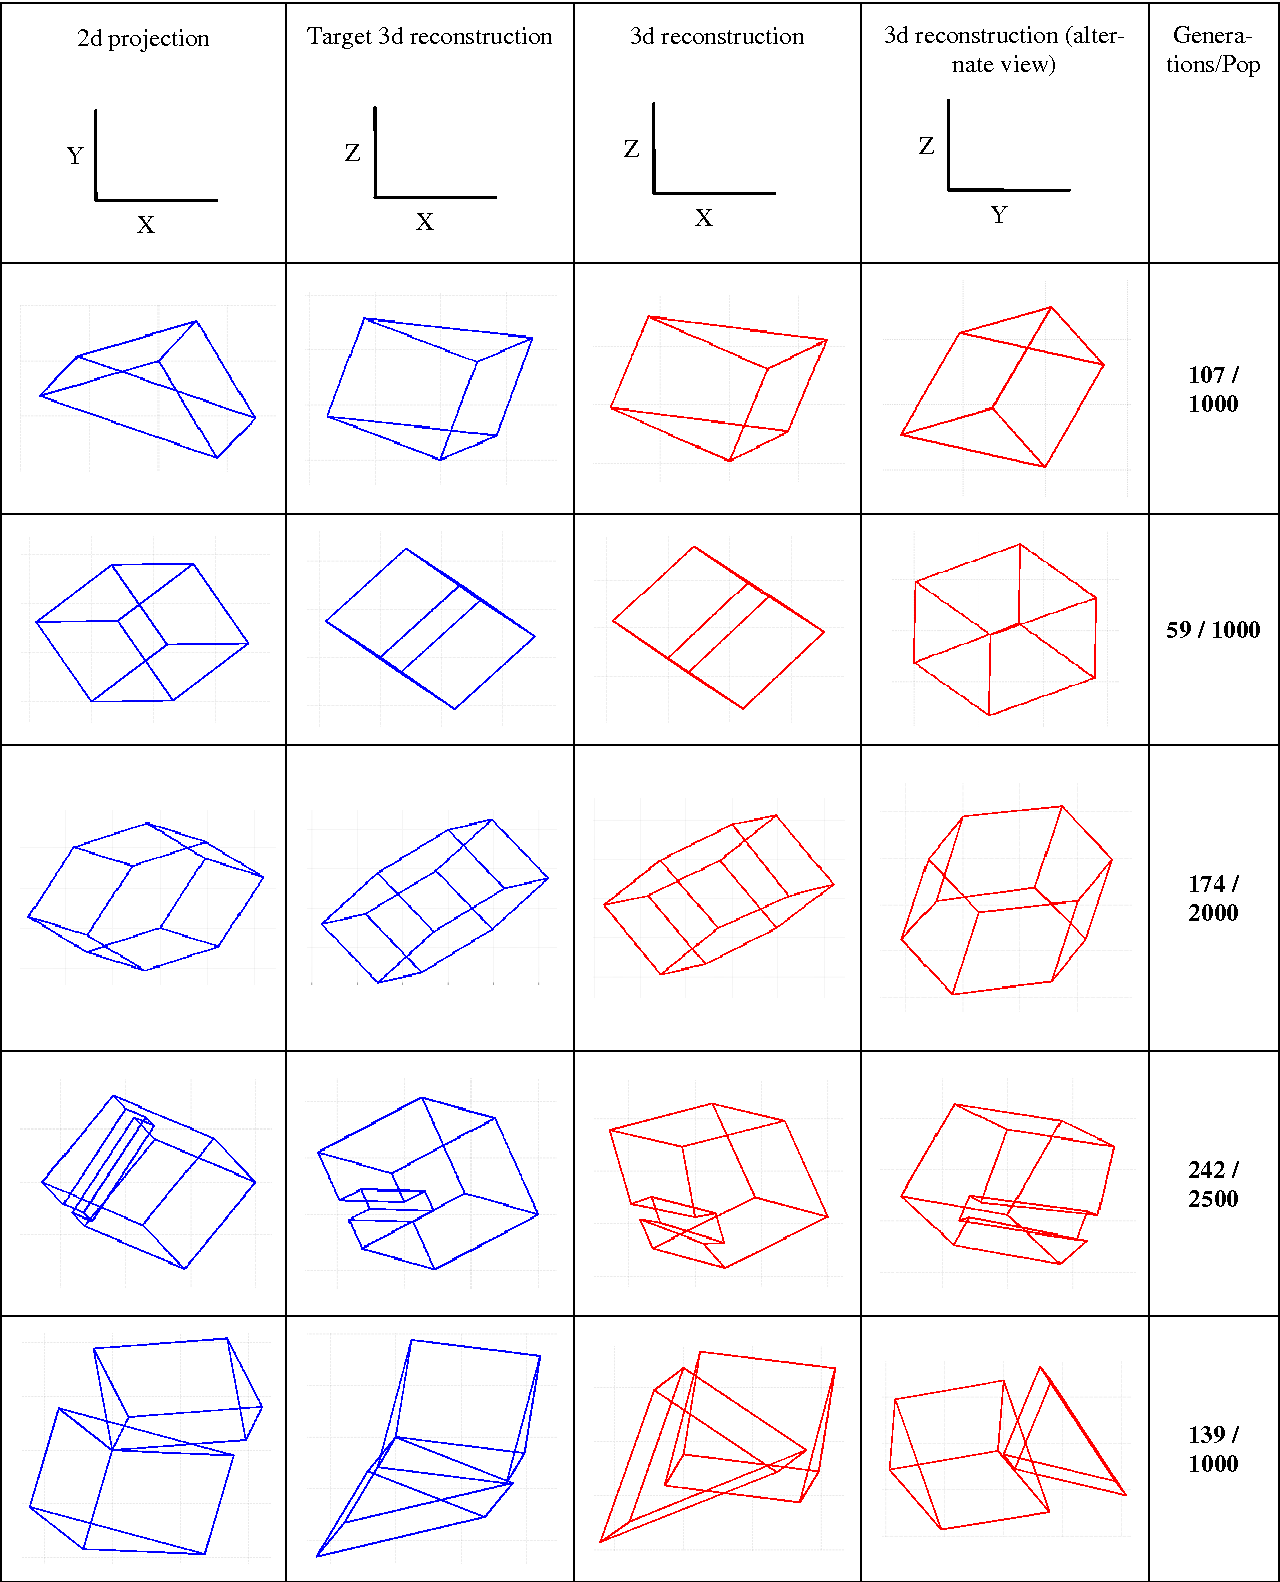 Figure 4 for Neural Network Based Reconstruction of a 3D Object from a 2D Wireframe